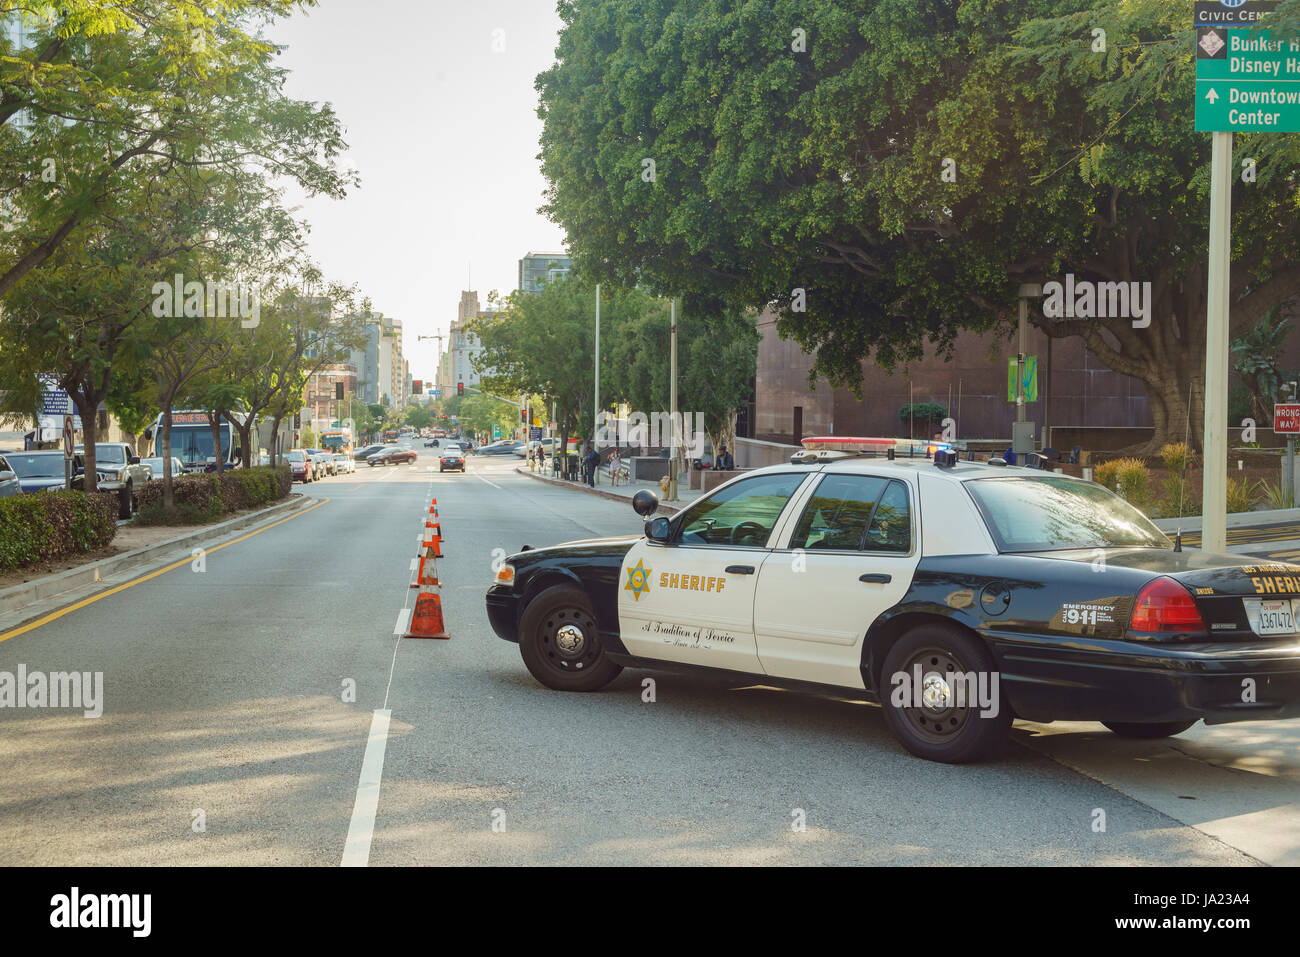 Los Angeles, APR 11: Sheriff car on the road on APR 11, 2017 at Los Angeles Stock Photo